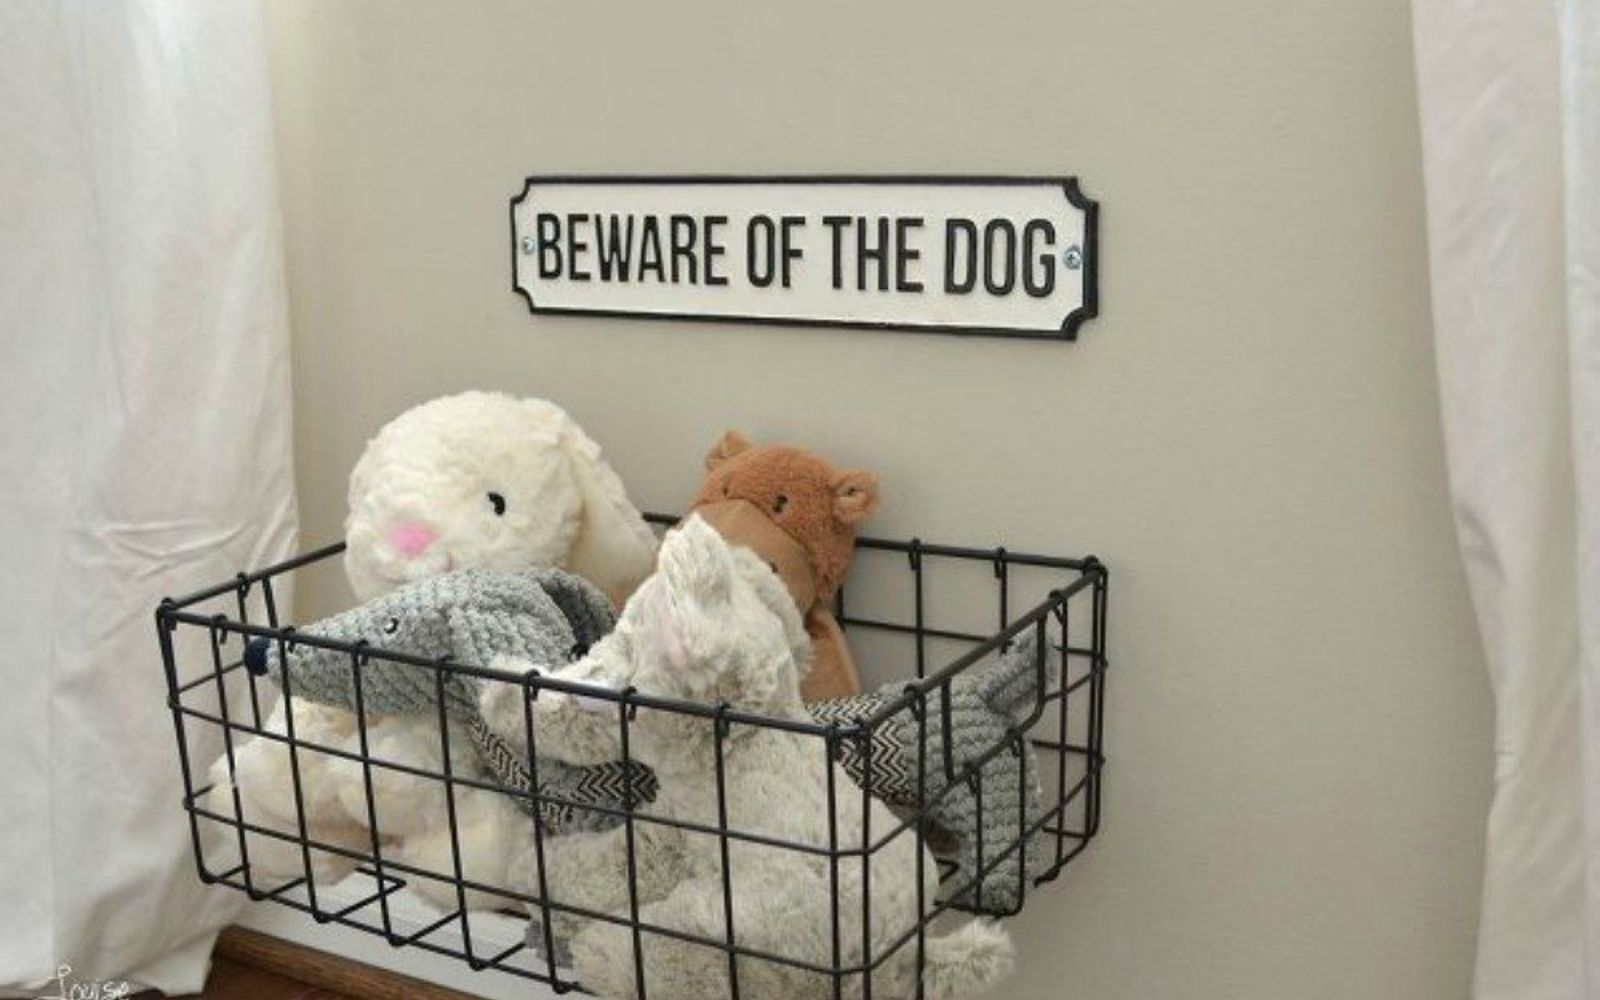 s 11 amazing toy storage ideas from highly organized moms, organizing, storage ideas, Store stuffed animals in a cute crate basket